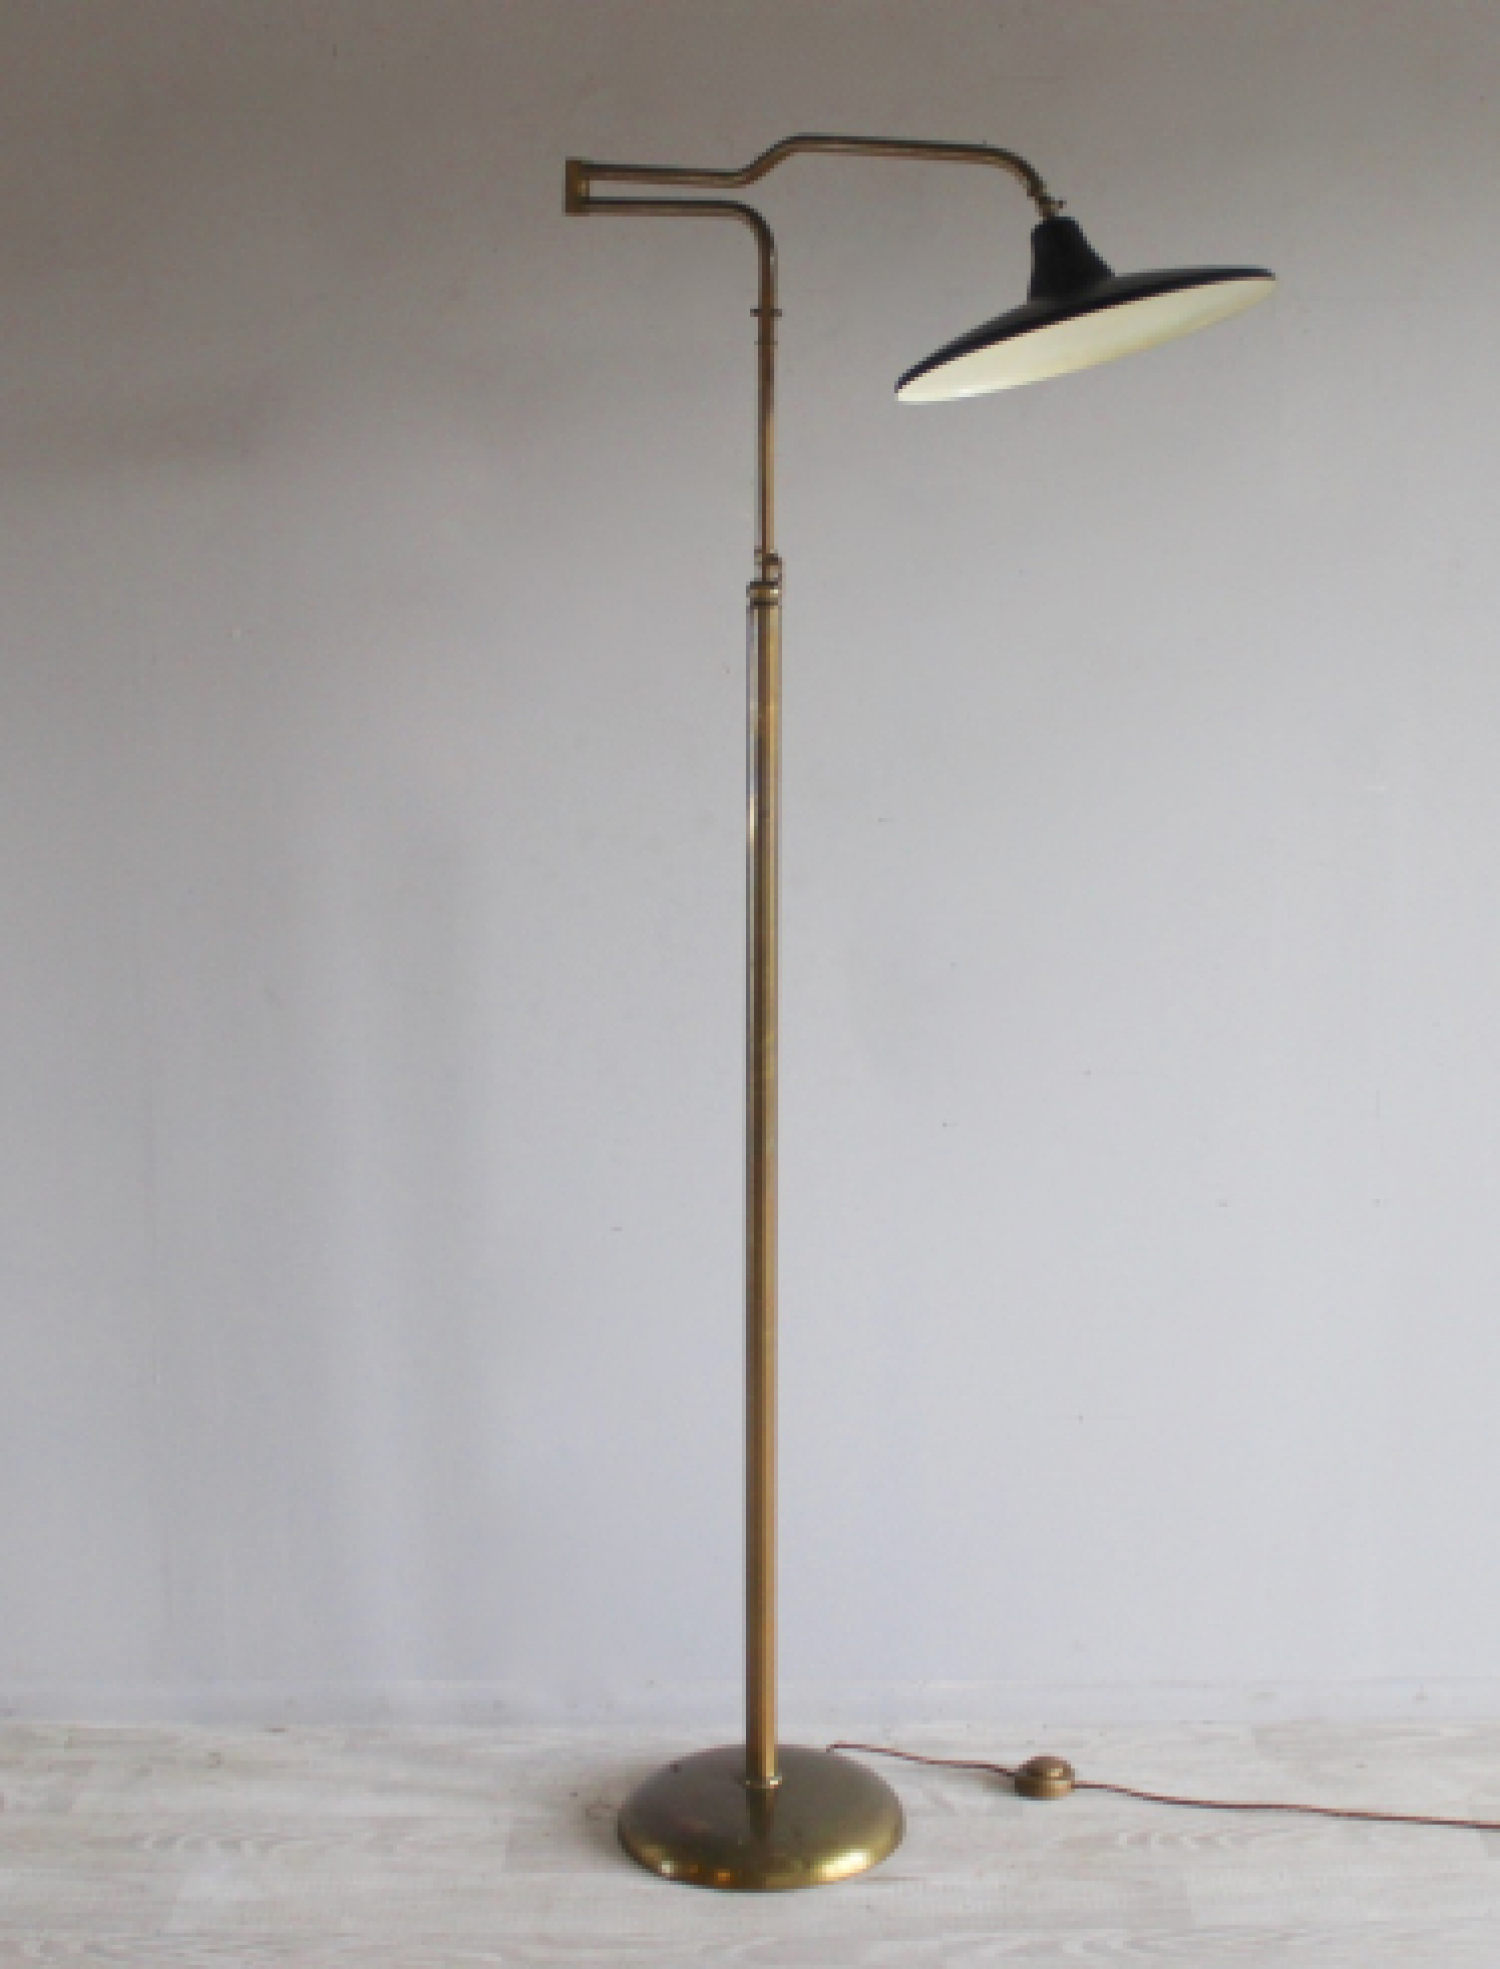 Antique lighting - reading and floor lamps for Christmas - image 4